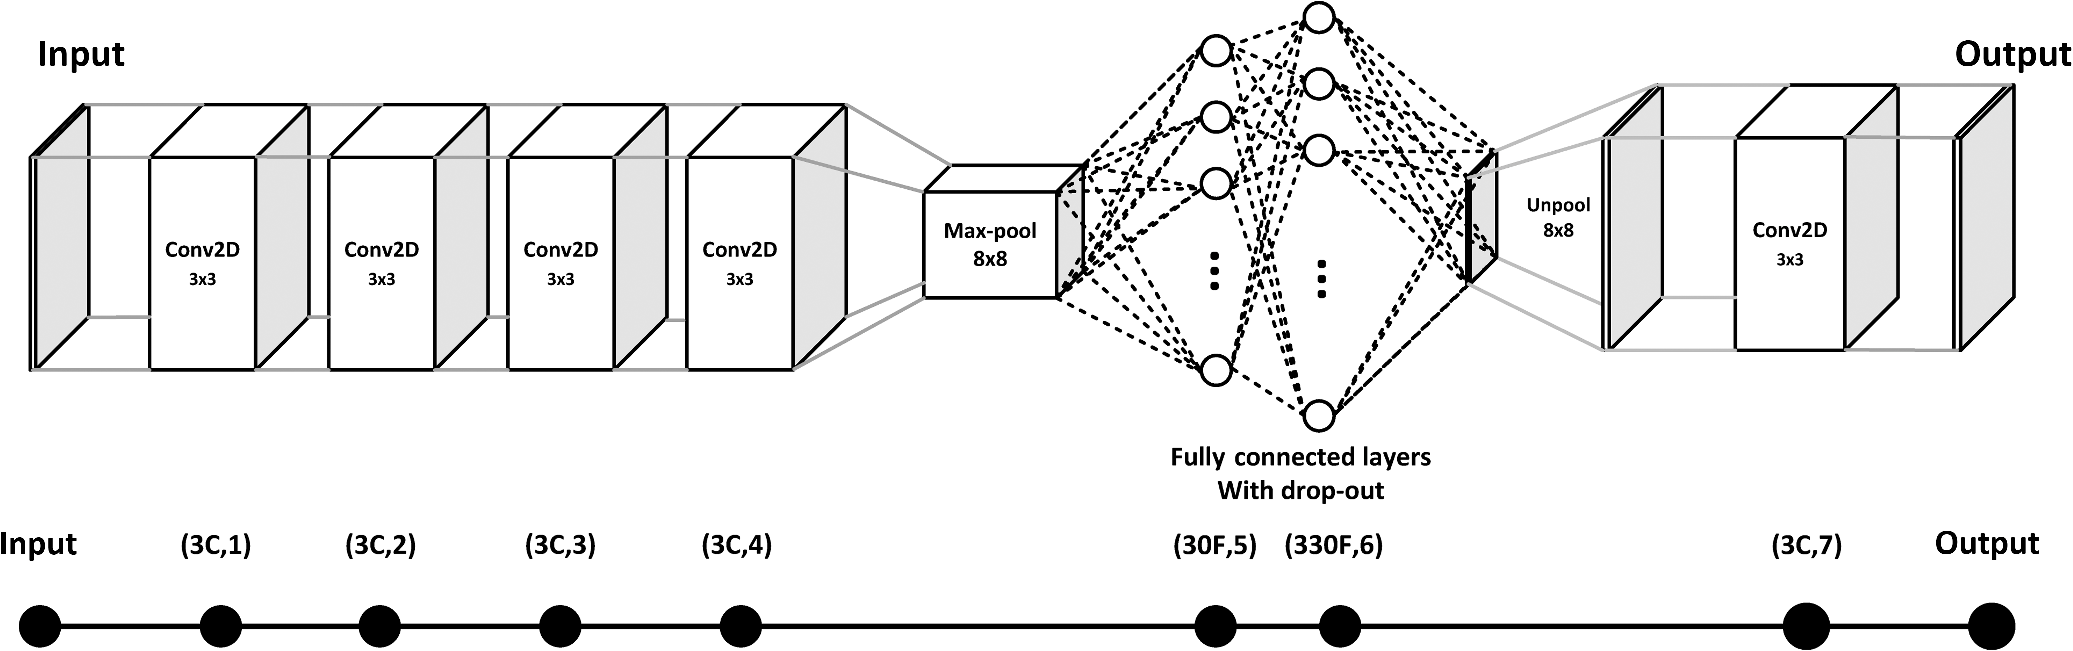 Semiparallel Deep Neural Network Hybrid Architecture First Circuits Gt Use Sensors To Build Smart Sensor Systems Using Fig 17